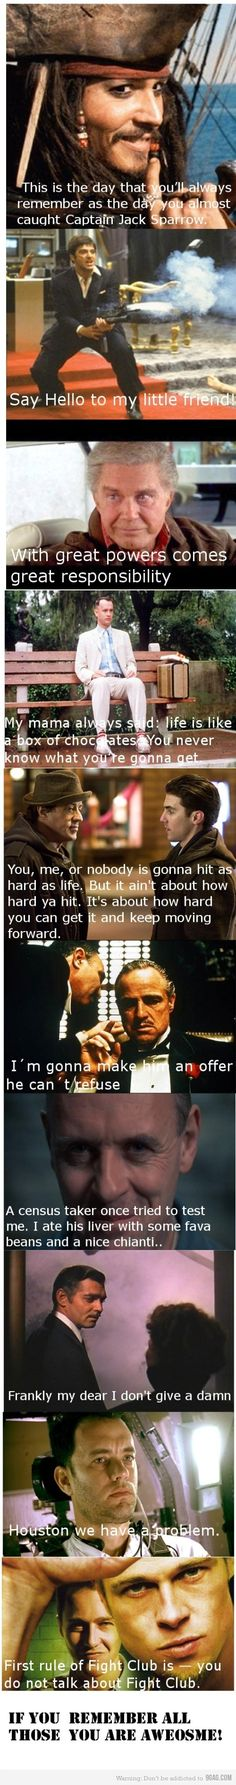 Famous movie quotes. The one quote that drives me nuts is